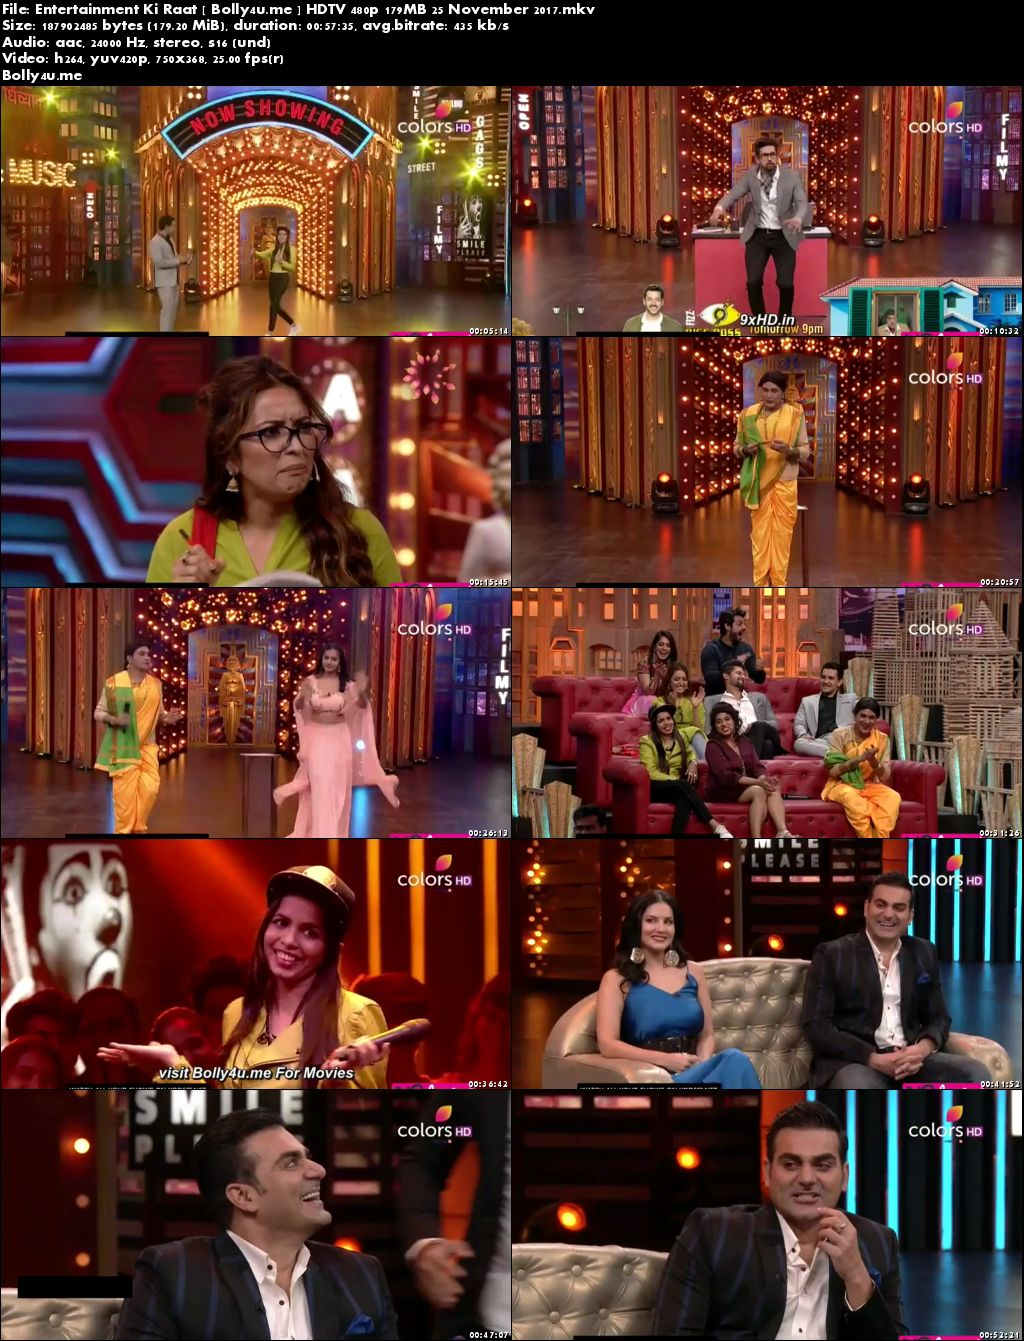 Entertainment Ki Raat HDTV 480p 180MB 25 November 2017 Download